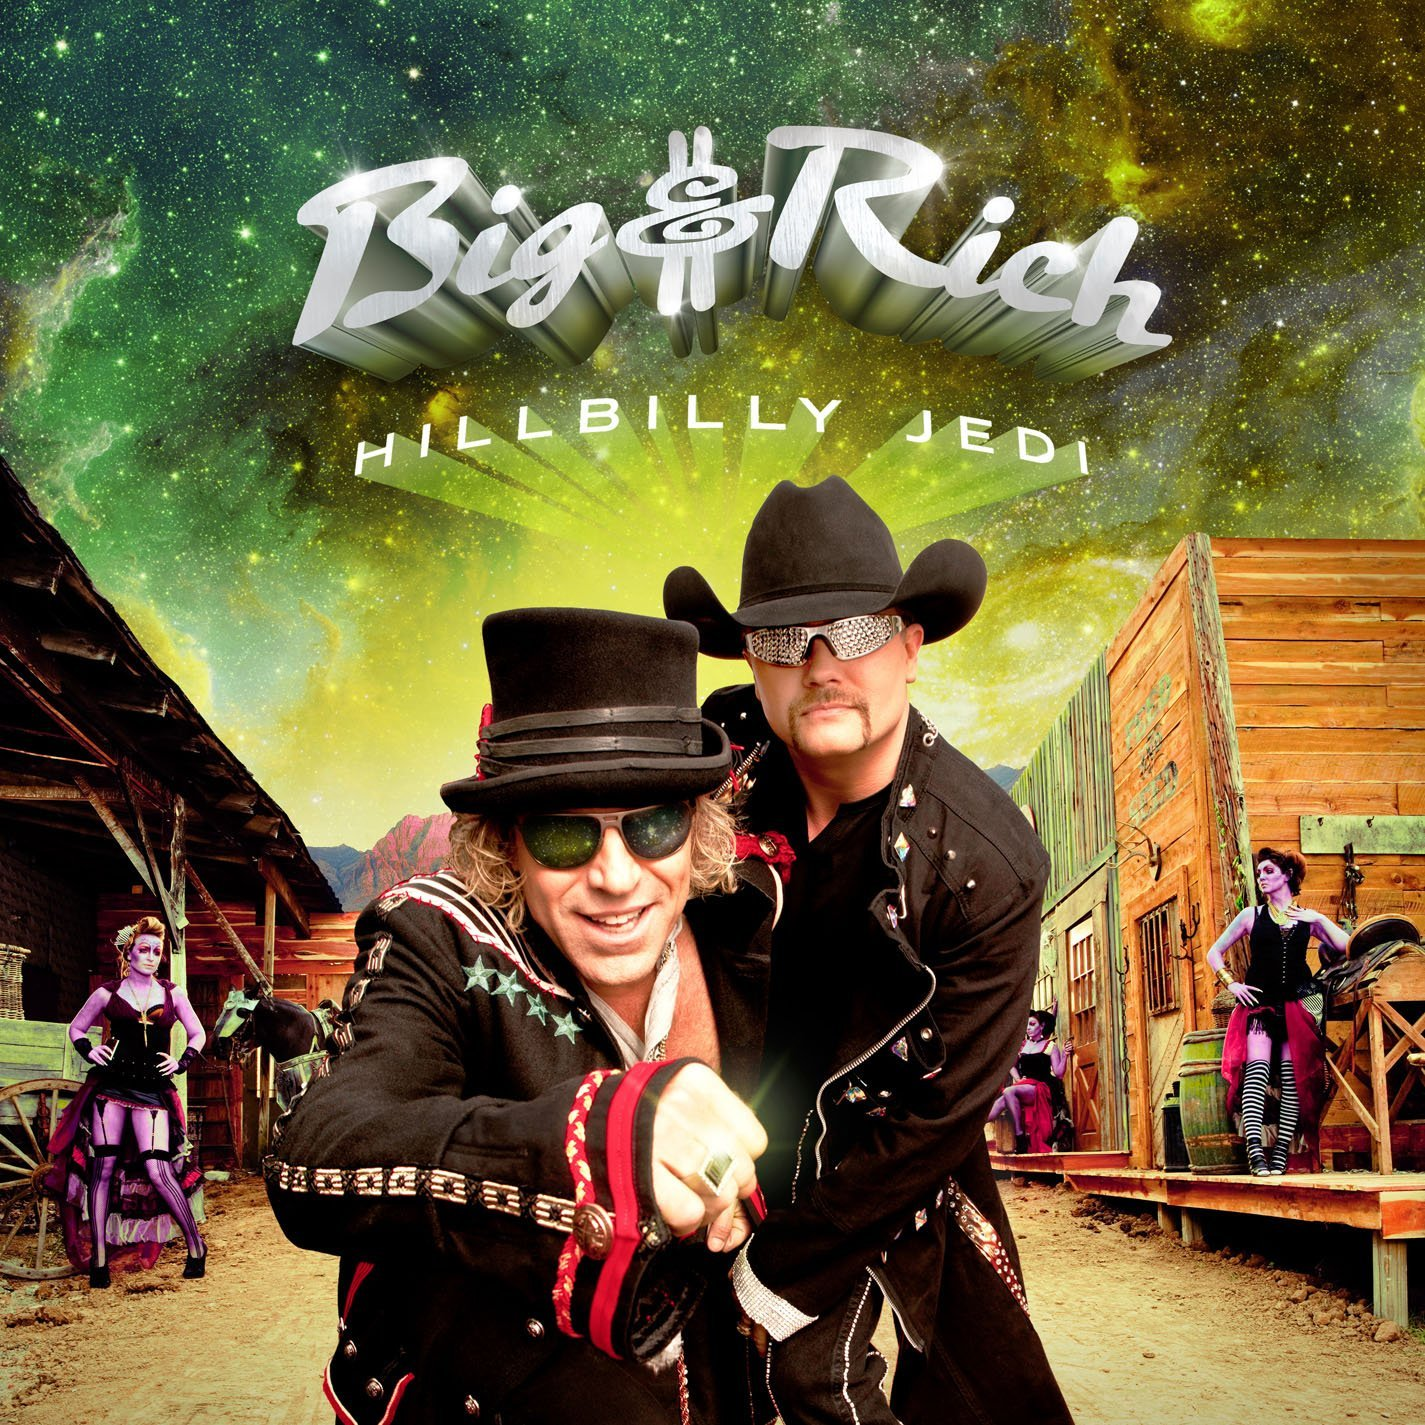 Big & Rich, Hillbilly Jedi